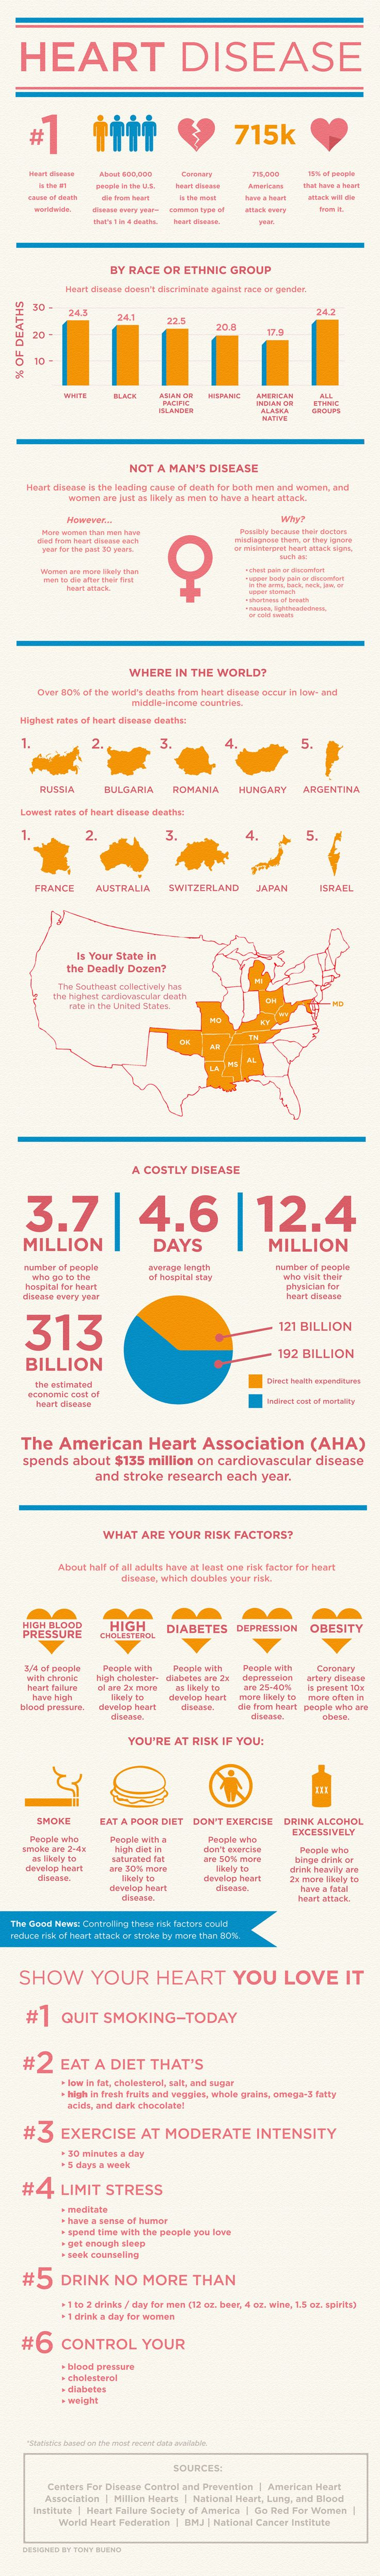 Every year, 1 in 4 deaths are caused by heart disease. View this great informational graphic from Healthline on risk factors and tips that may help you prevent heart disease.